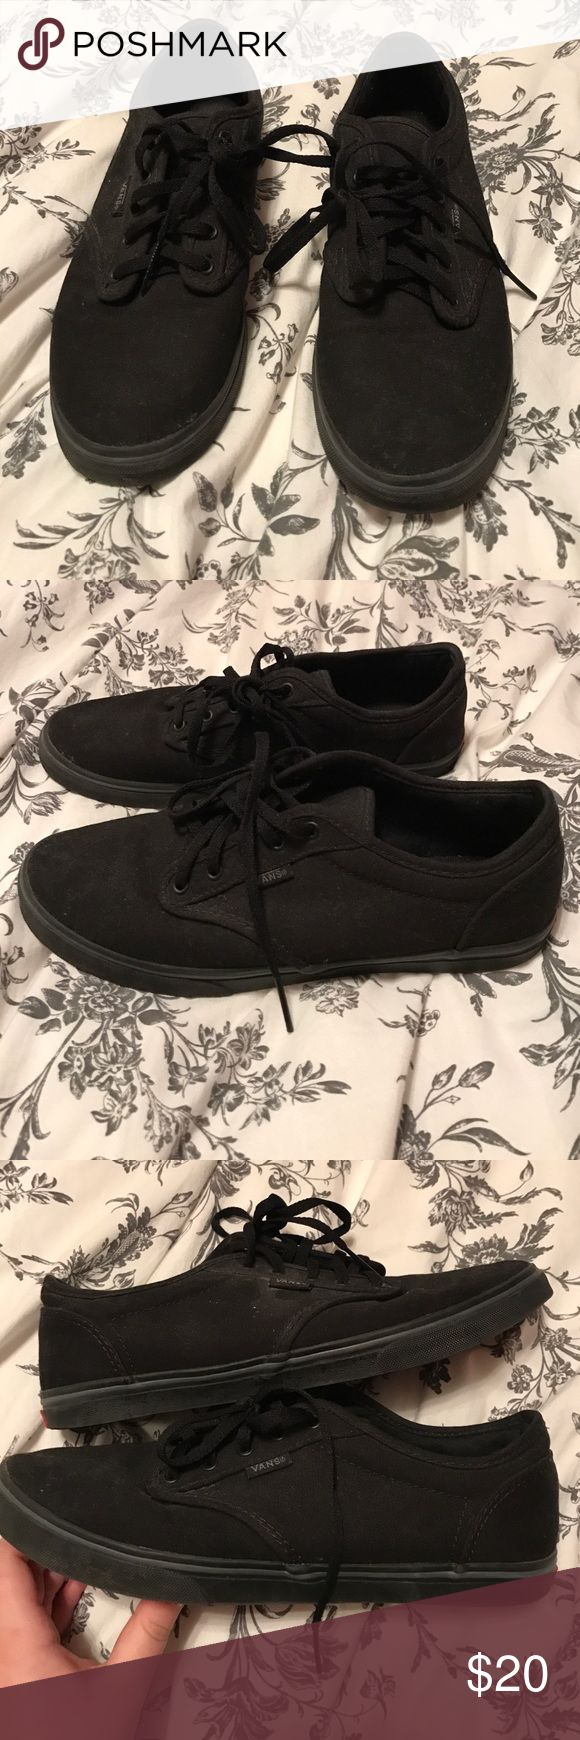 All Black Vans Women's Size 8 All black Vans. Women's size 8. Worn only two or three times. A little dusty. Vans Shoes Sneakers